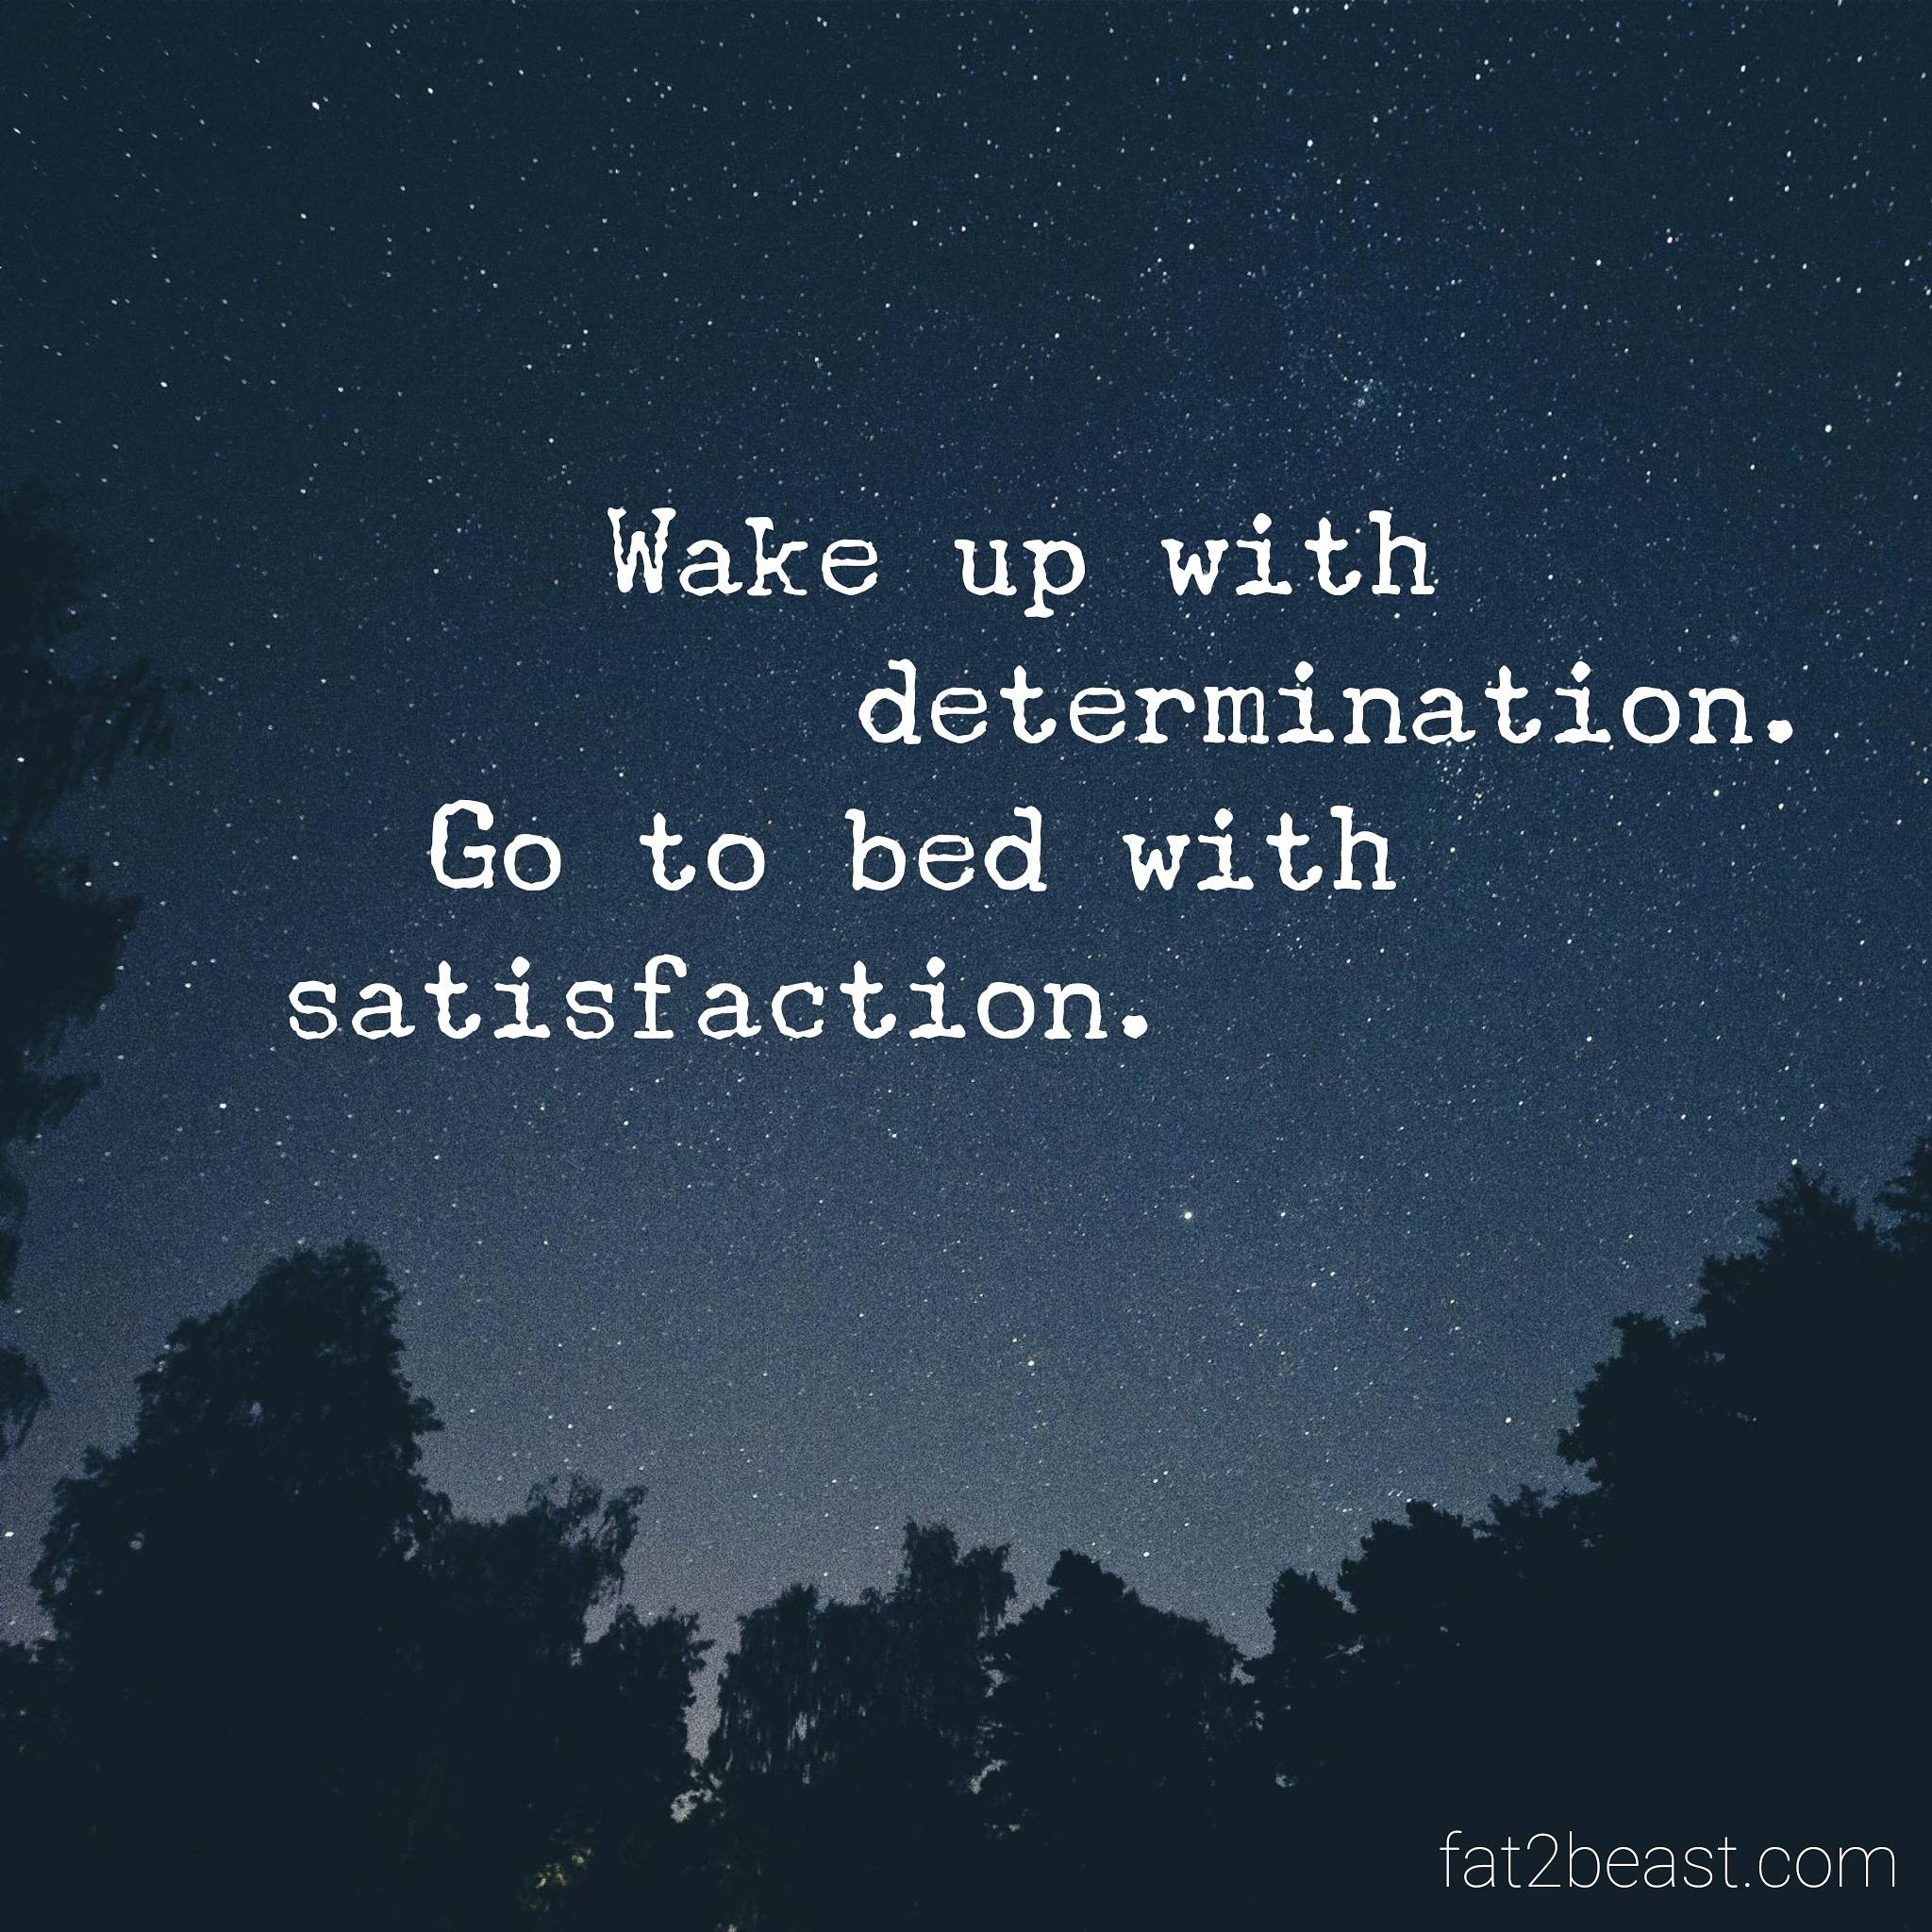 [Image]Wake up with determination. Go to bed with satisfaction.